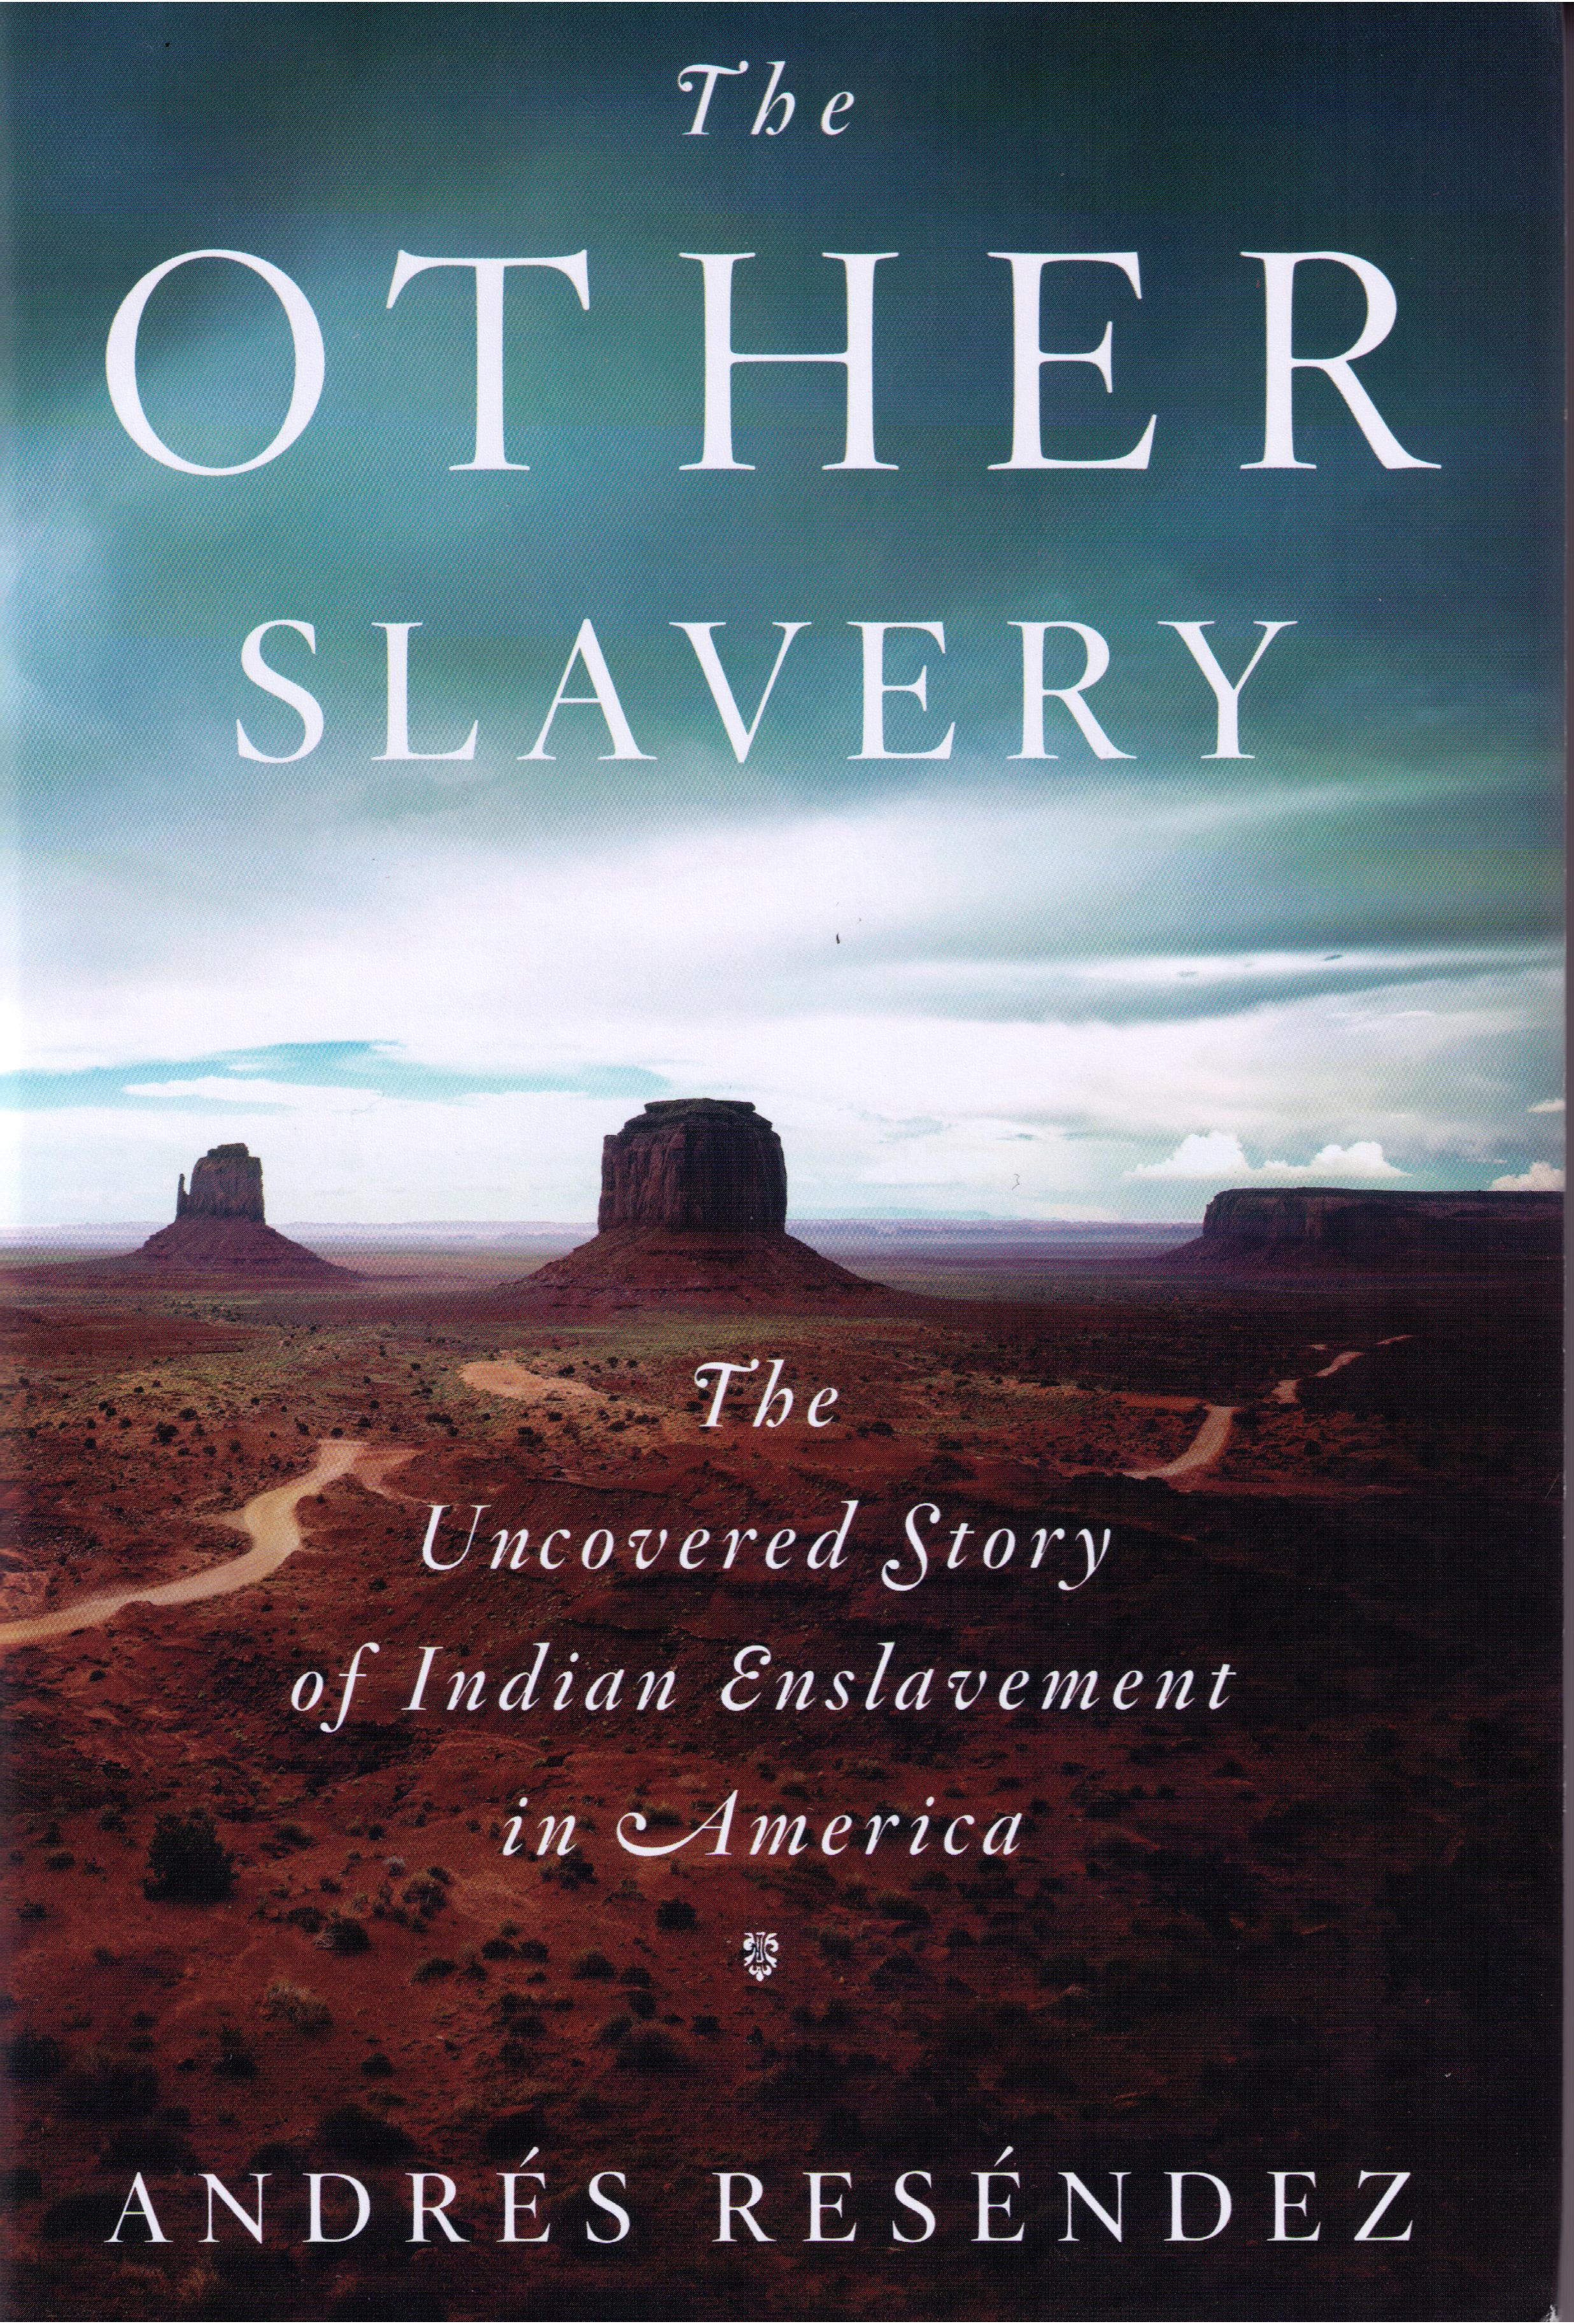 The Other Slavery: The Uncovered Story of Indian Enslavement in America book by Andrés Reséndez